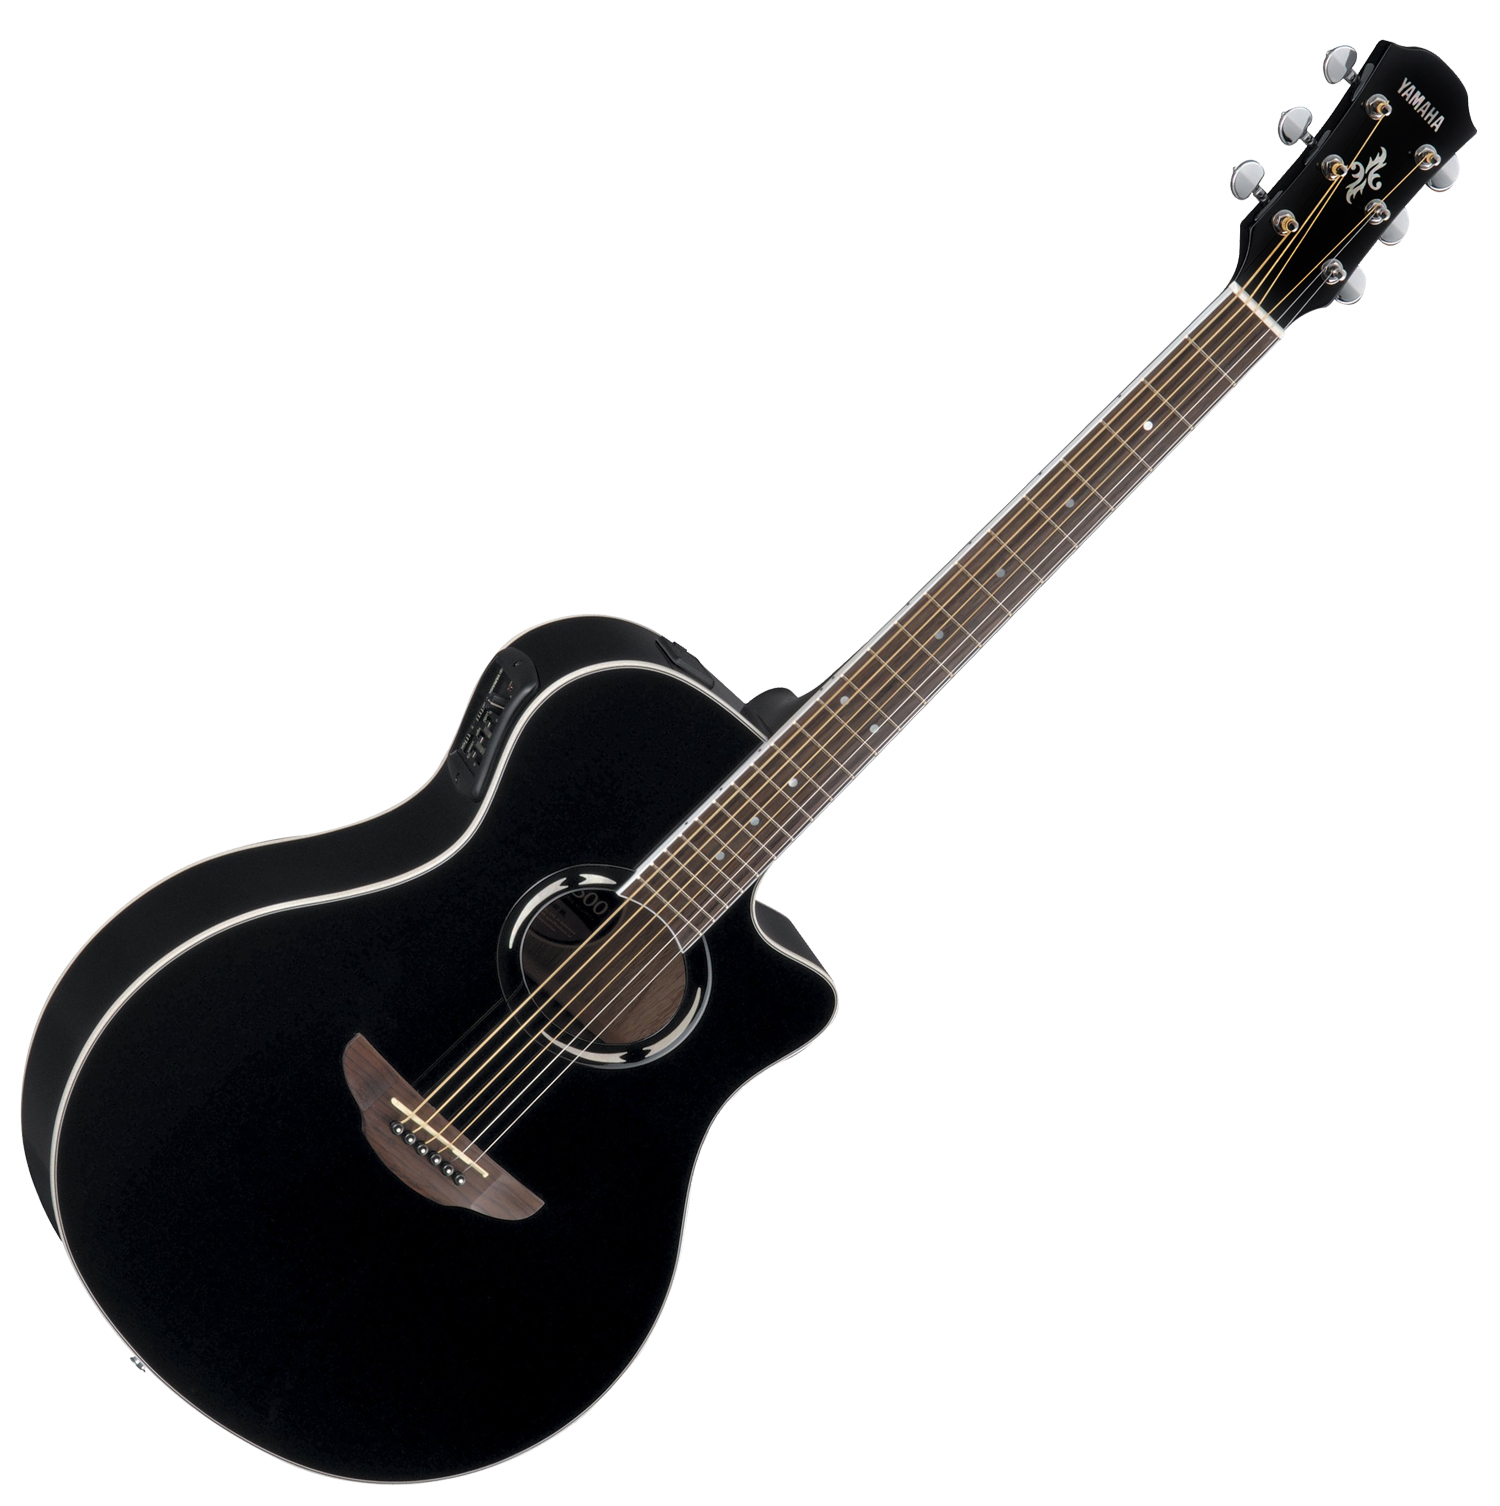 musicworks guitars acoustic electric guitars acoustic electric guitar yamaha apx. Black Bedroom Furniture Sets. Home Design Ideas